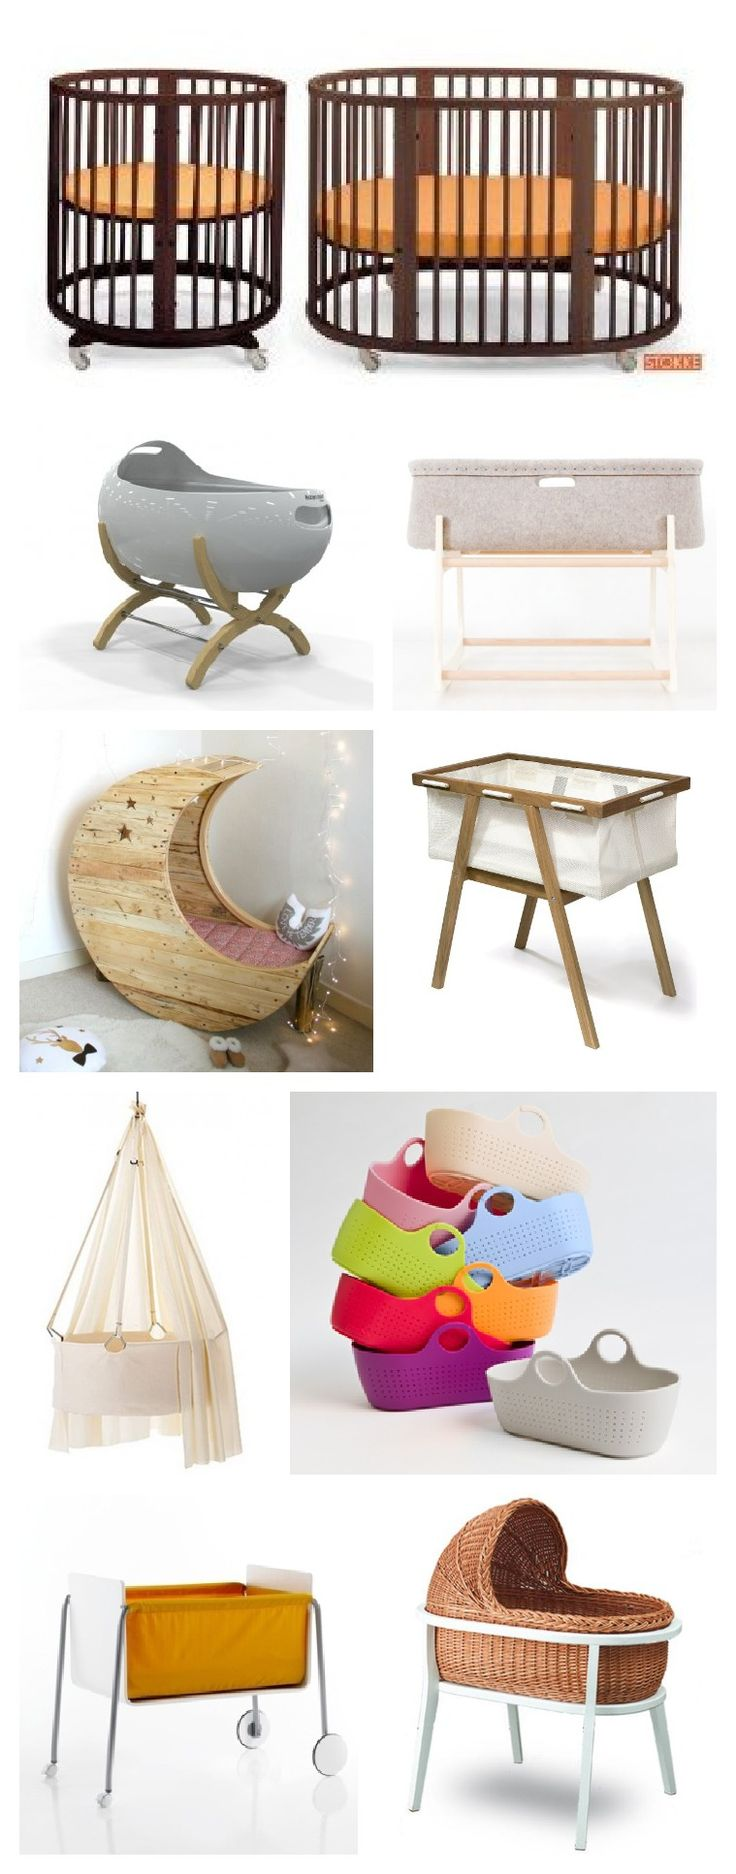 Love this pick of super cool #cots and #cribs for #babies from Bambino Goodies: http://www.bambinogoodies.co.uk/the-bg-guide-to-cribs-cradles-and-bassinets/